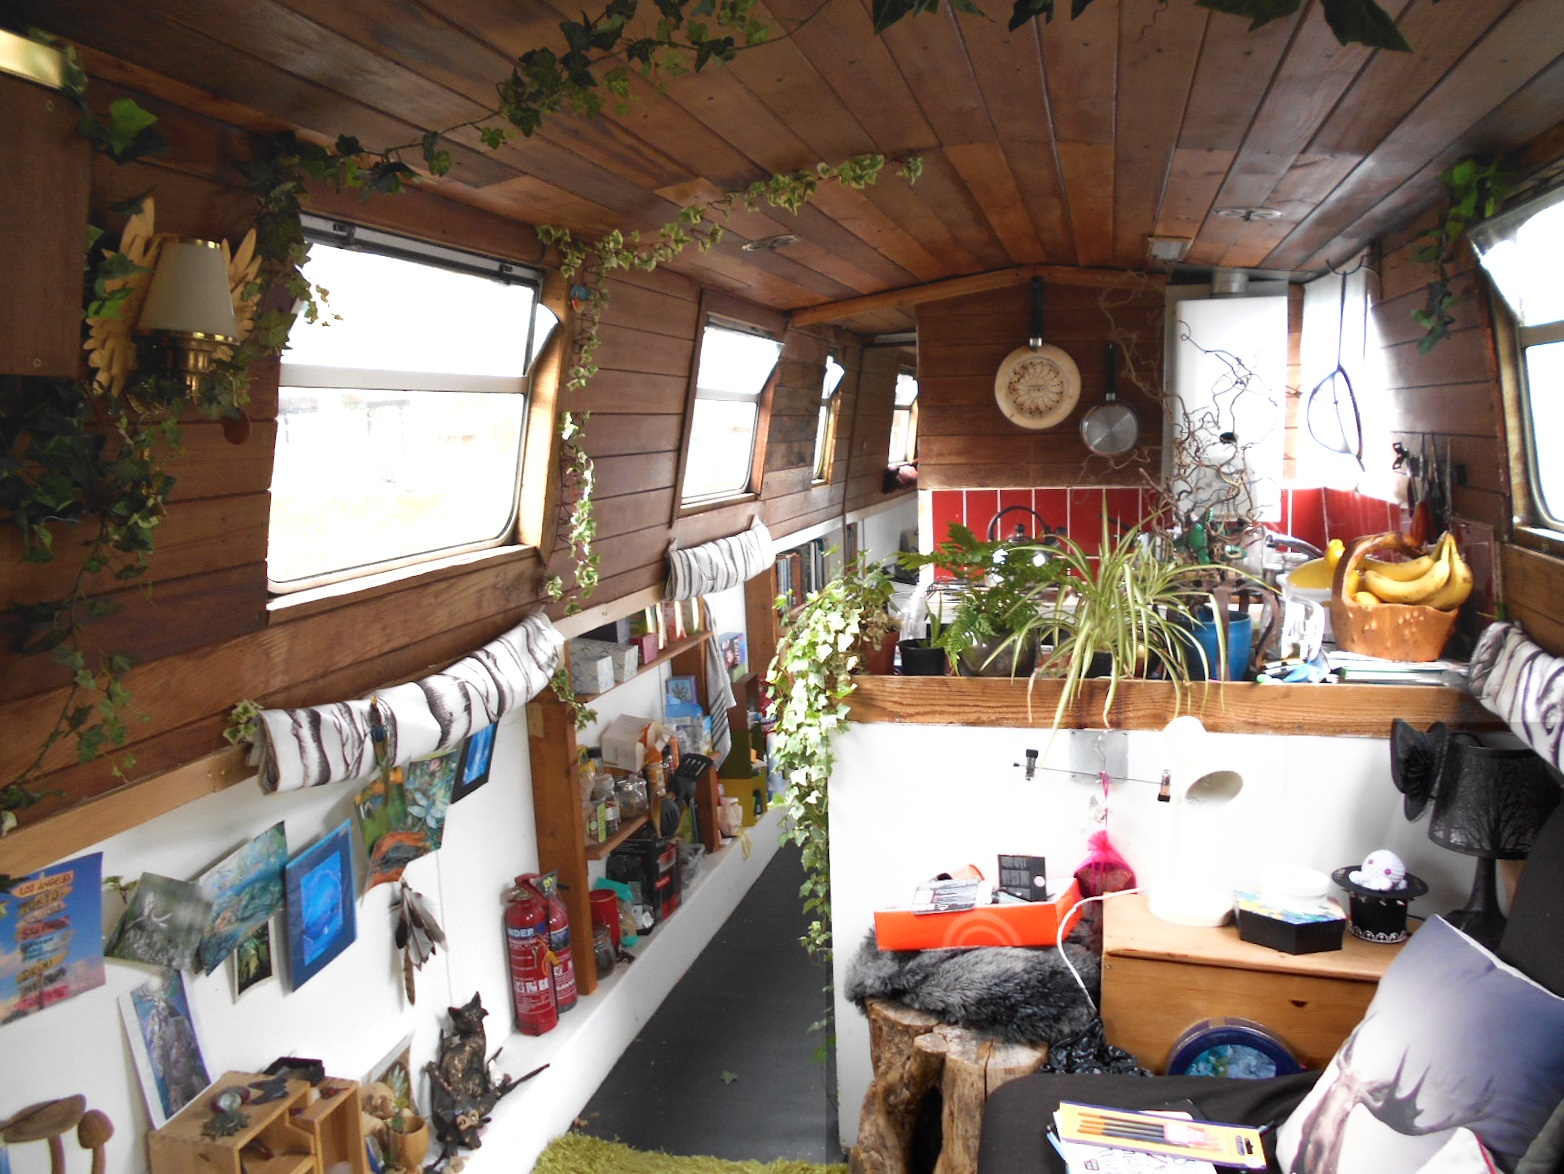 Living on a houseboat - my decorating tips for small spaces